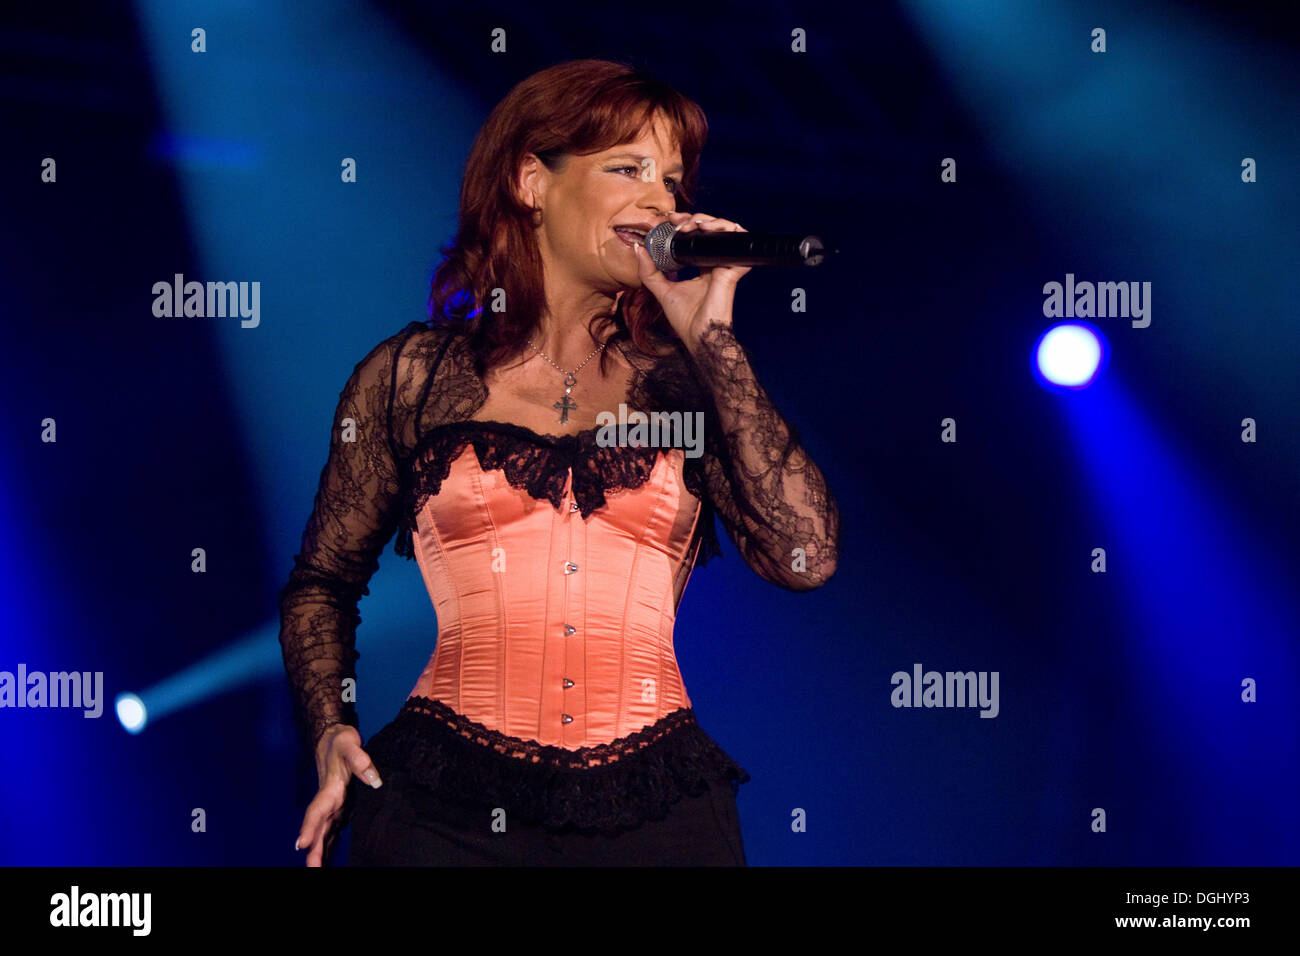 Andrea berg 2016 hd image free - German Pop Singer Andrea Berg Live In The Sursee Civic Hall Sursee Switzerland